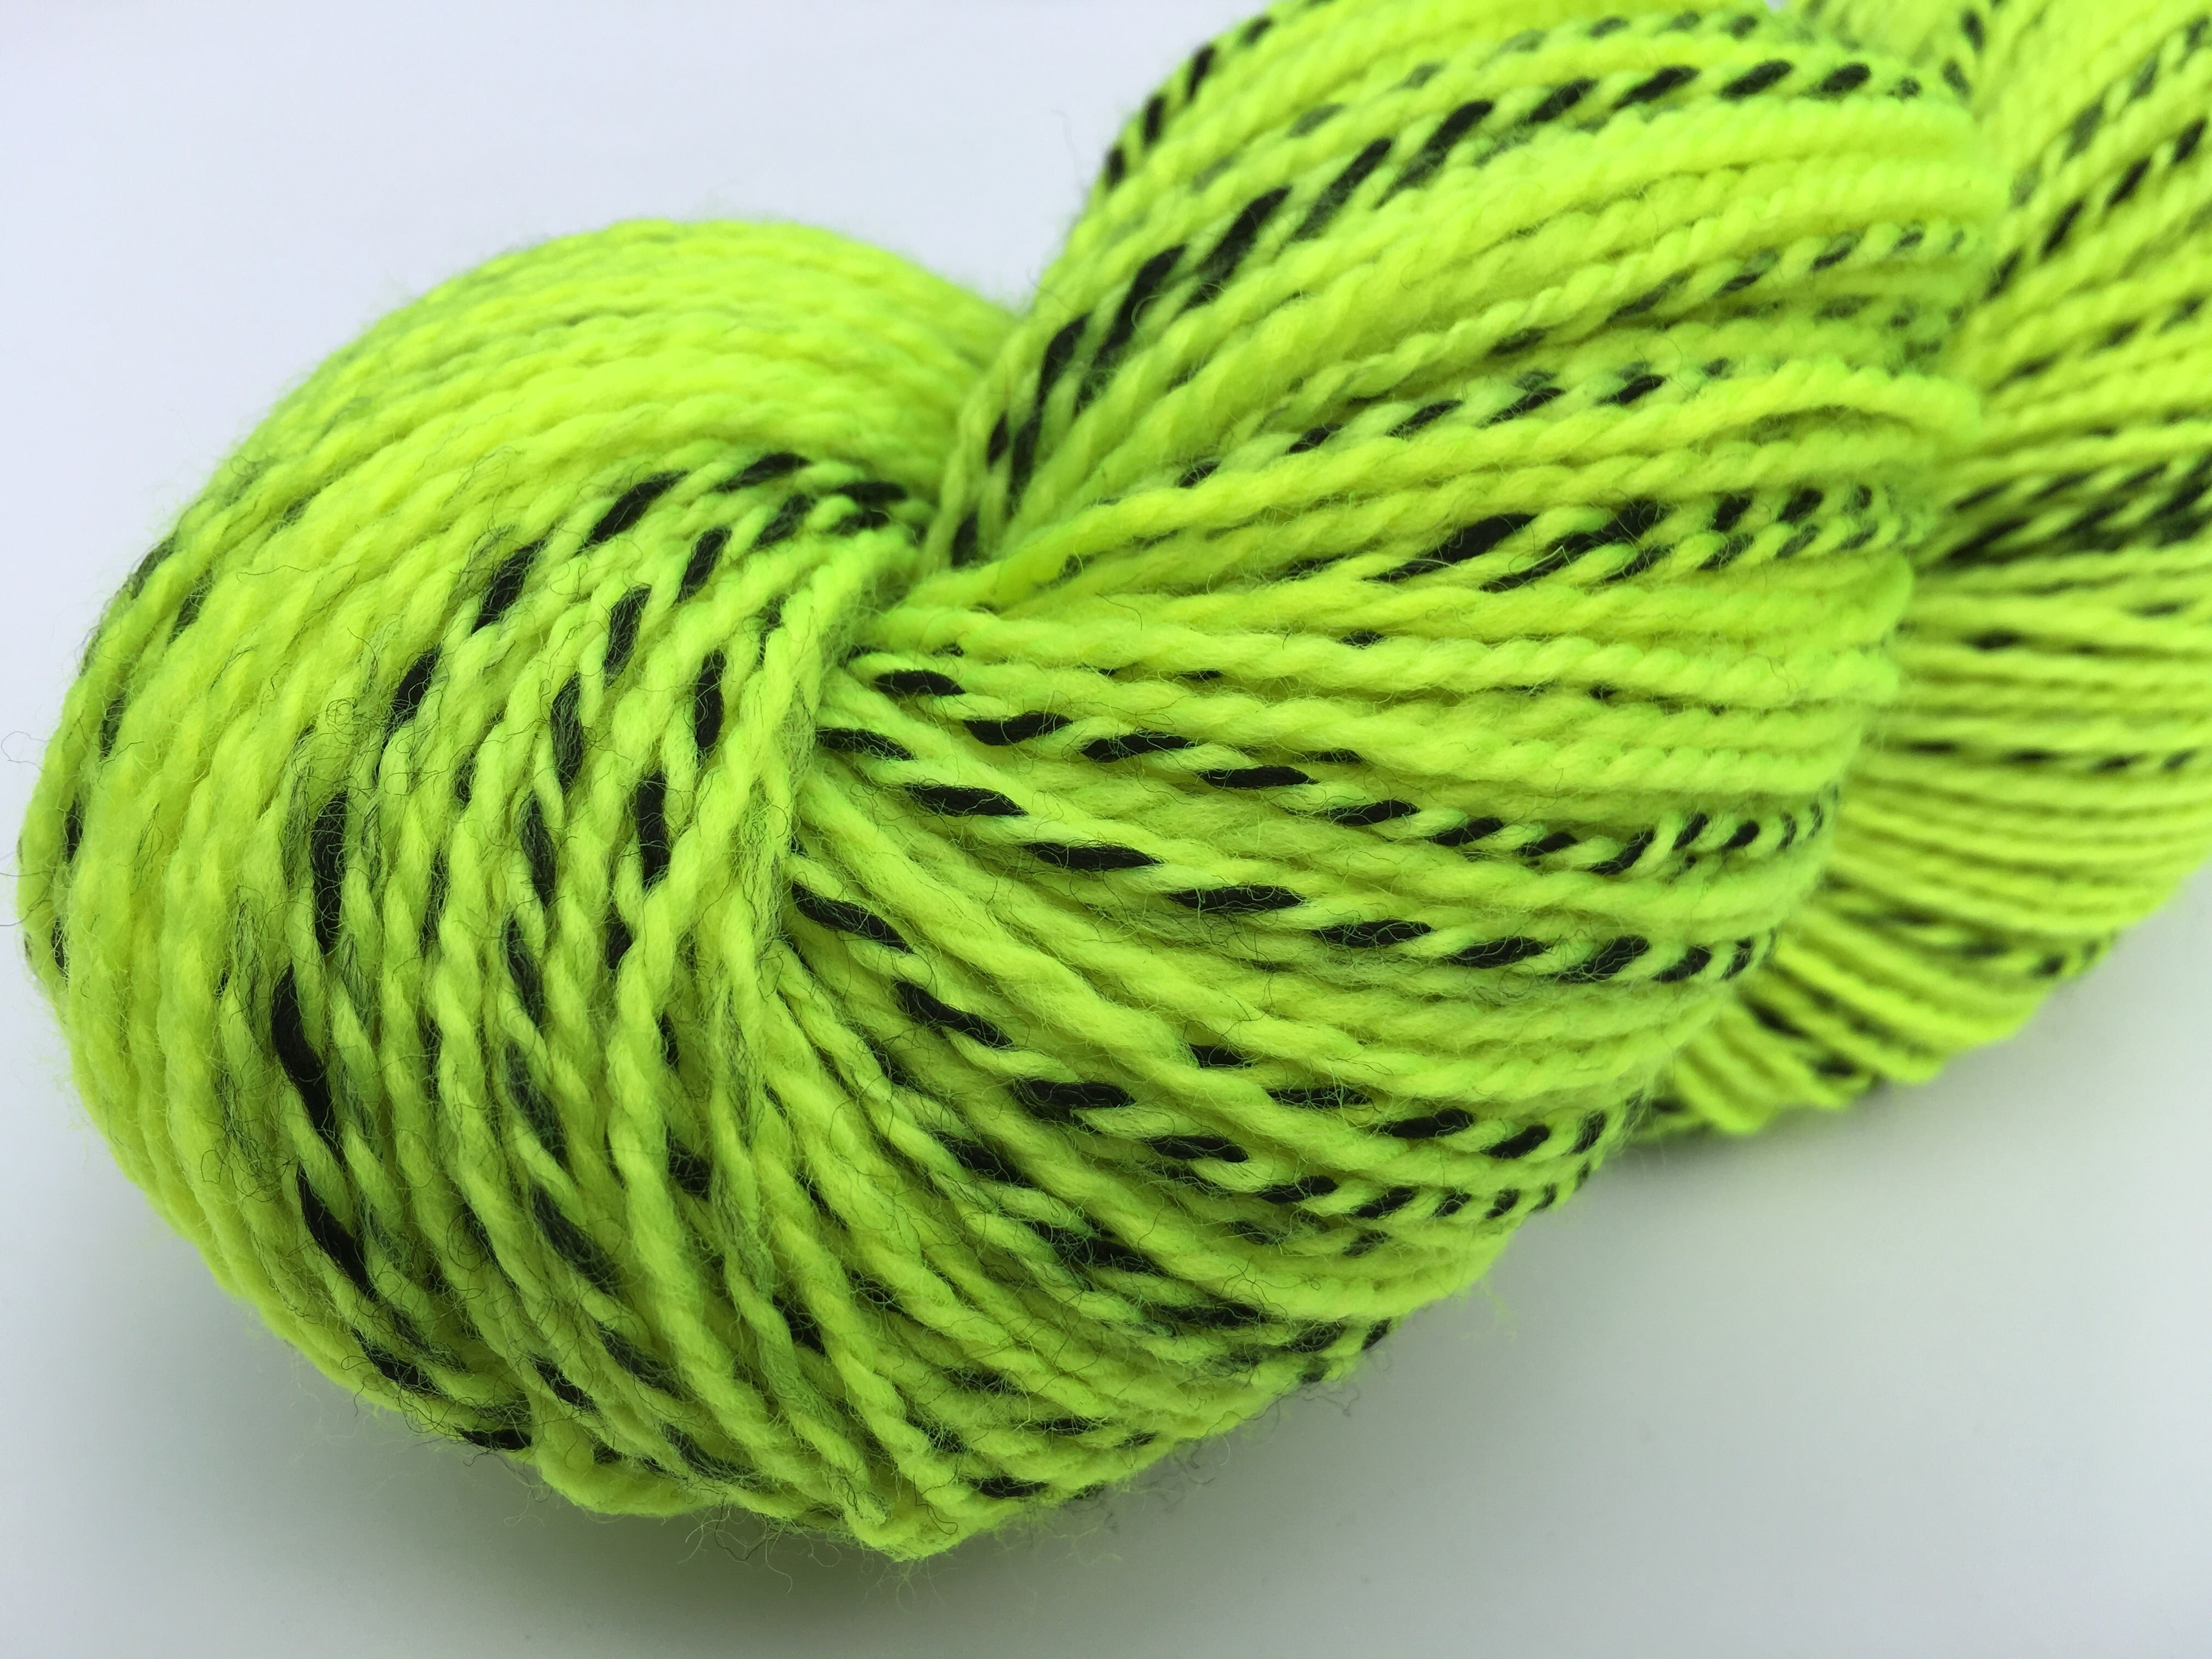 uv reactive neon highlighter yellow green sock yarn with a black zebra stripe